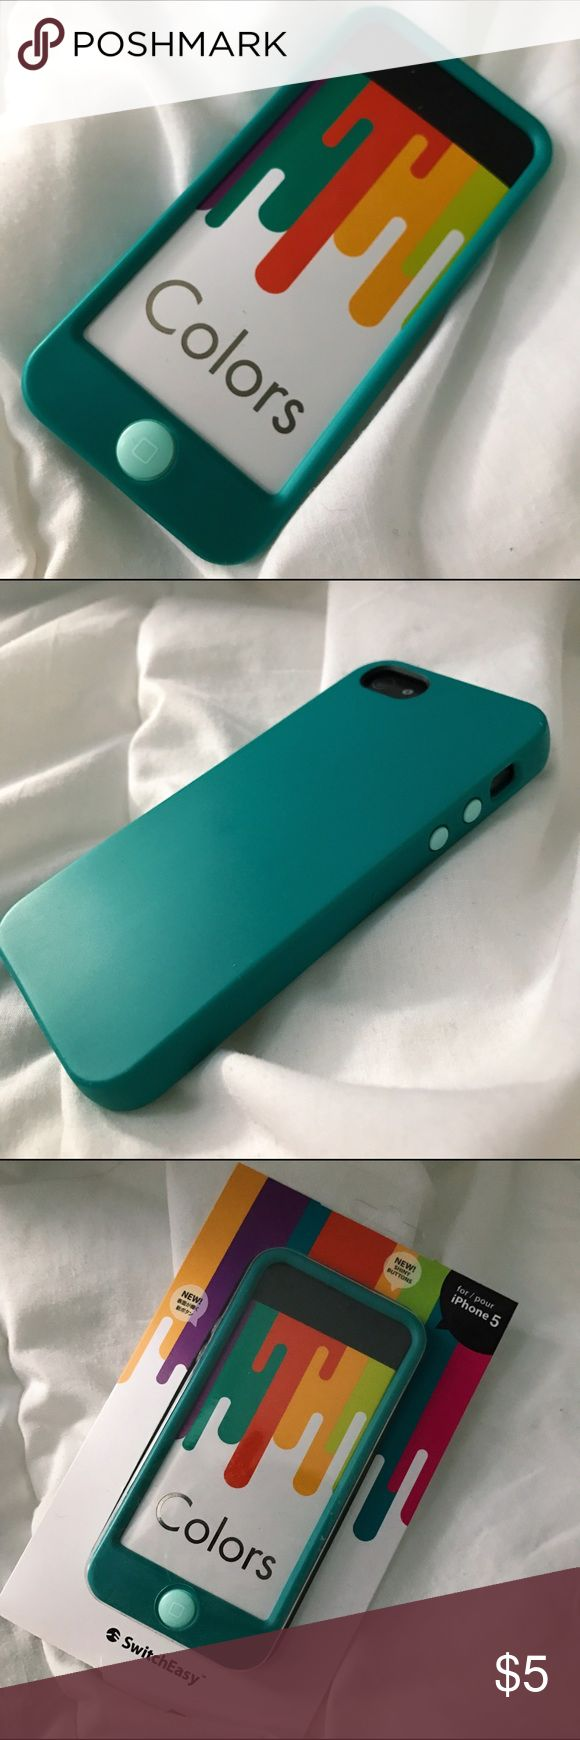 SWITCHEASY Colors Turquoise iPhone 5 Case Soft rubber case with jelly buttons! For the iPhone 5/5S. Flexible. Comes in original packaging. Good condition. SwitchEasy Accessories Phone Cases